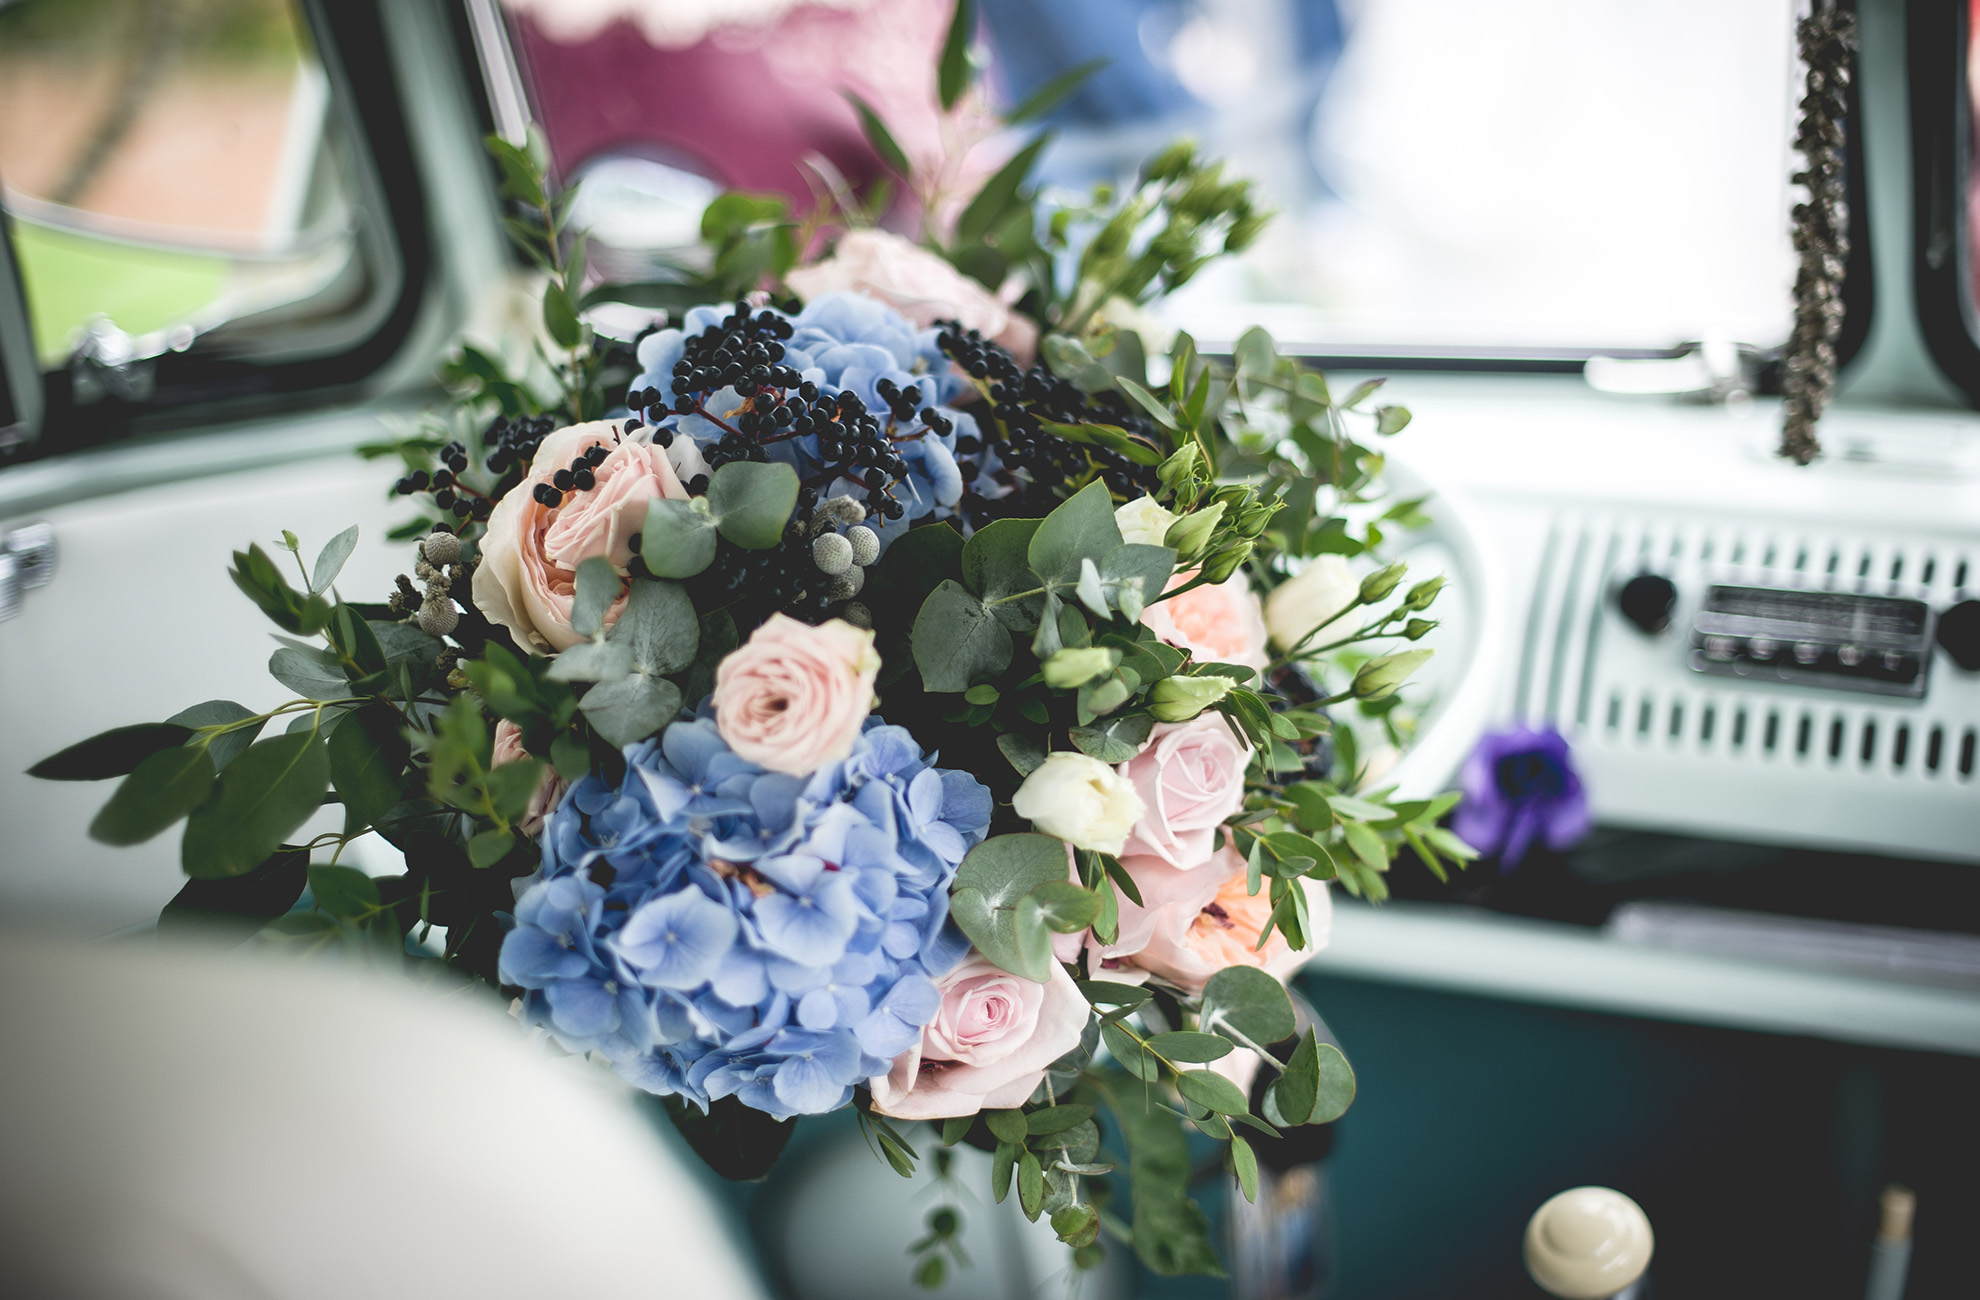 Garden wedding florals create beautiful wedding bouquets for a summer wedding at Combermere Abbey